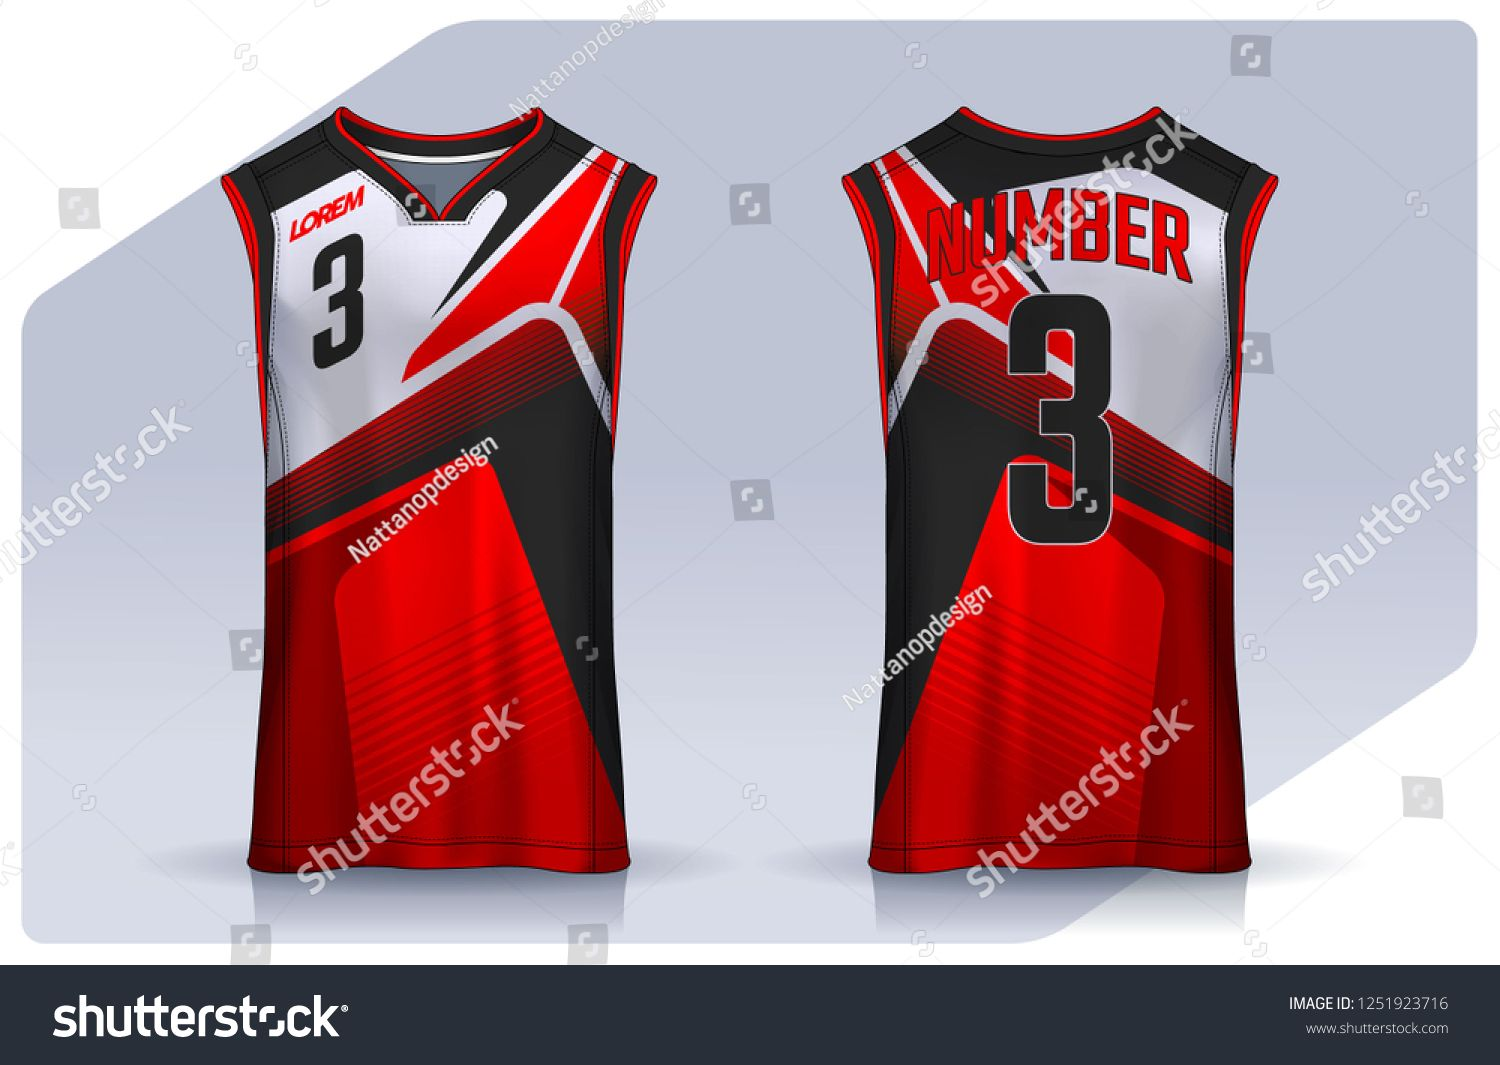 Download Basketball Tank Top Design Template Sport Jersey Mockup Uniform Front And Back View Design Template Top Basketbal Basketball Tank Tops Tank Top Designs Tops